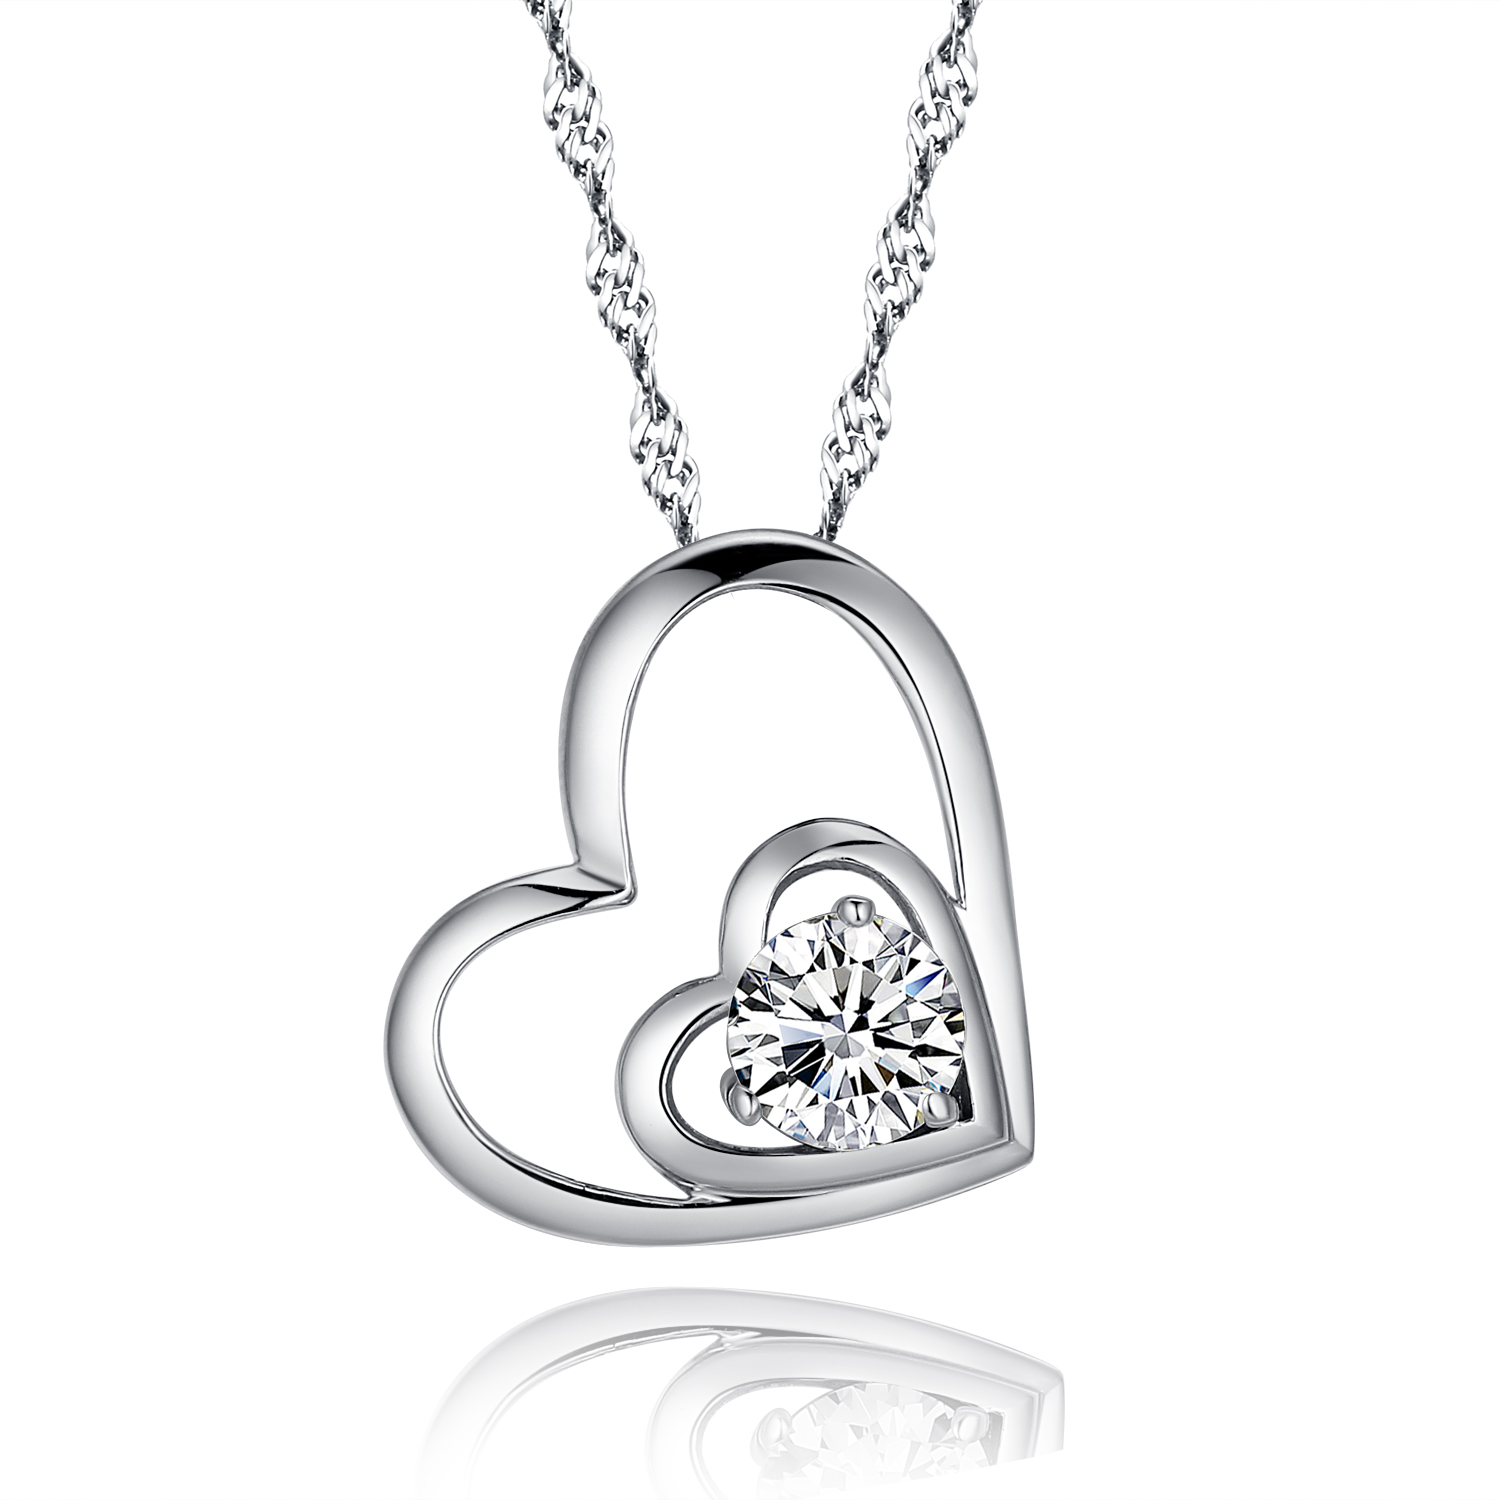 925 sterling silver double love open heart pendant necklace paved 925 sterling silver double love open heart pendant necklace paved cubic zirconia cz and 18 inch aloadofball Gallery